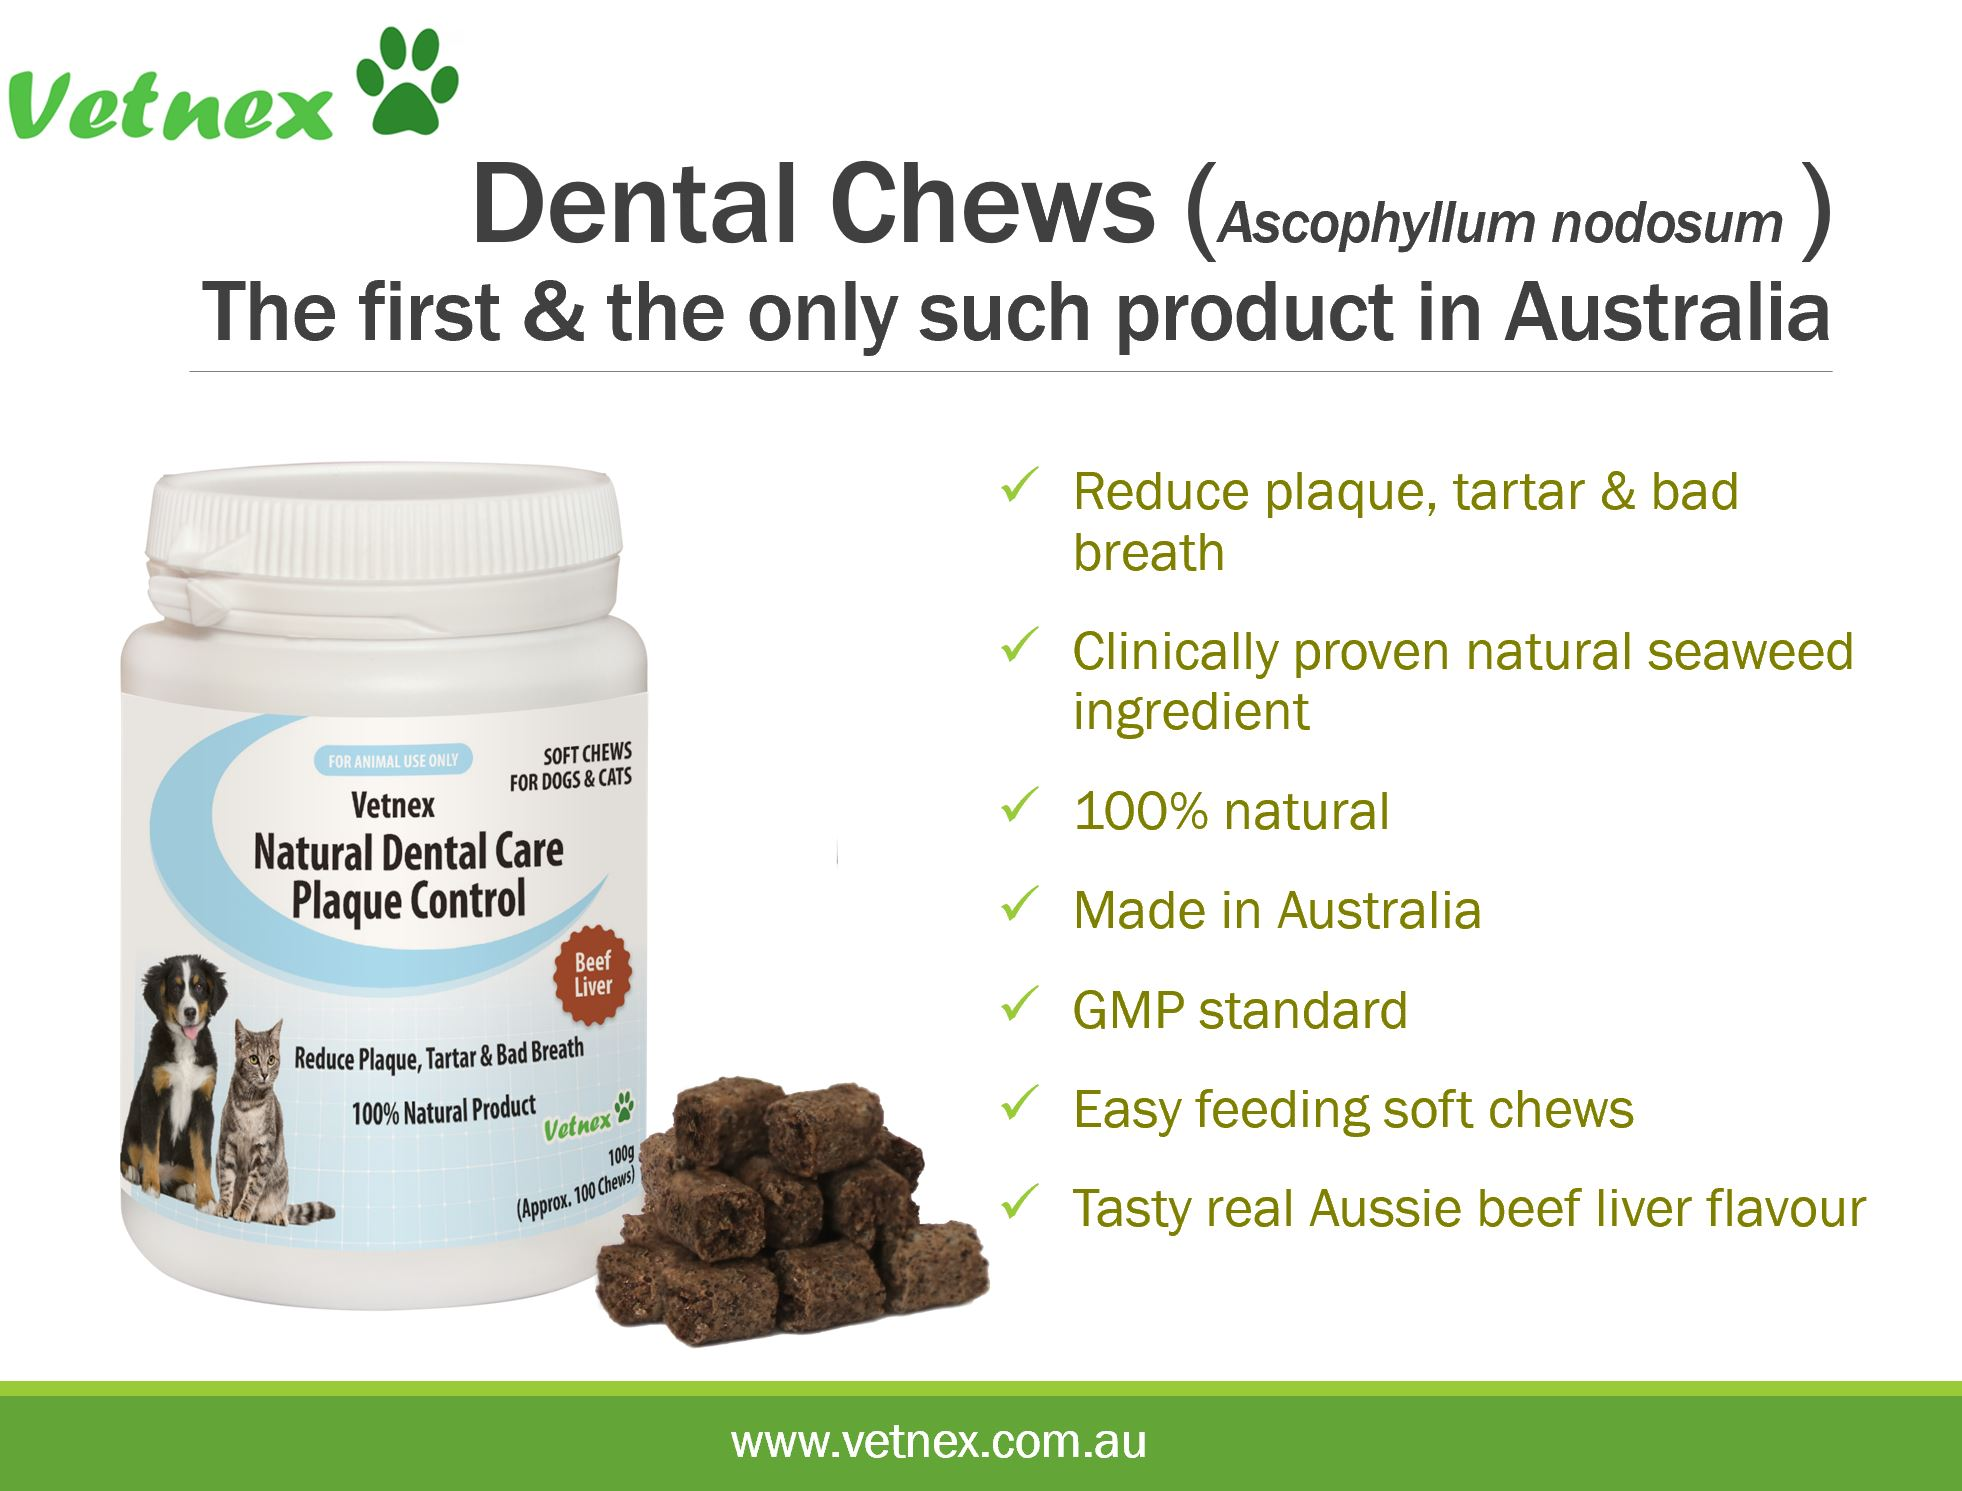 Vetnex Natural Dental Care Plaque Control Soft Chews, The First & The Only Such Product Available in Australia